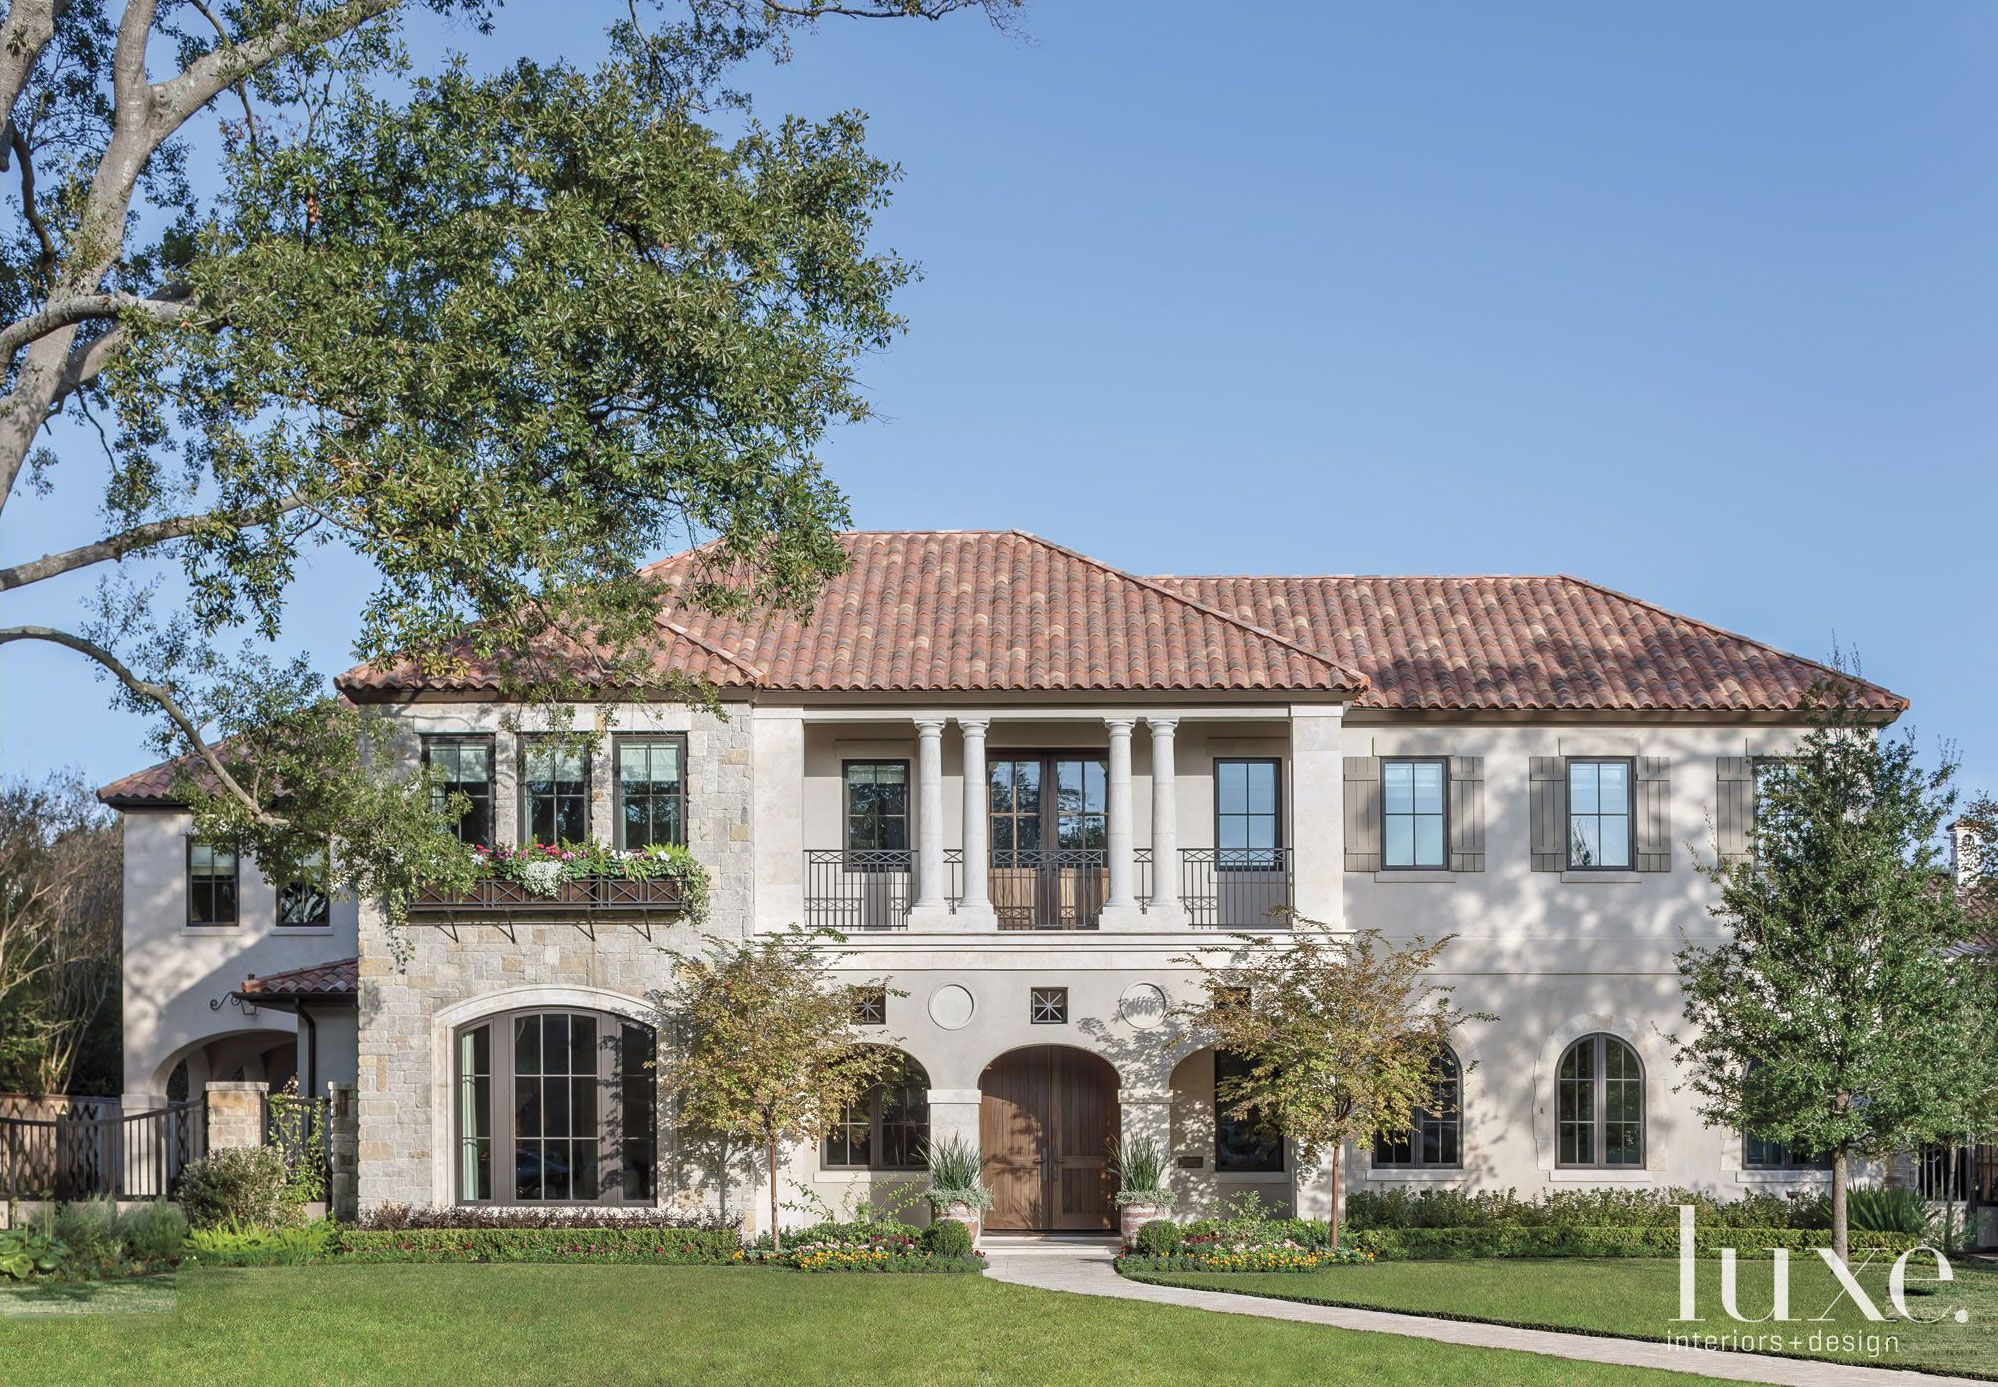 Florentine Style Home With Clay Tile Roof